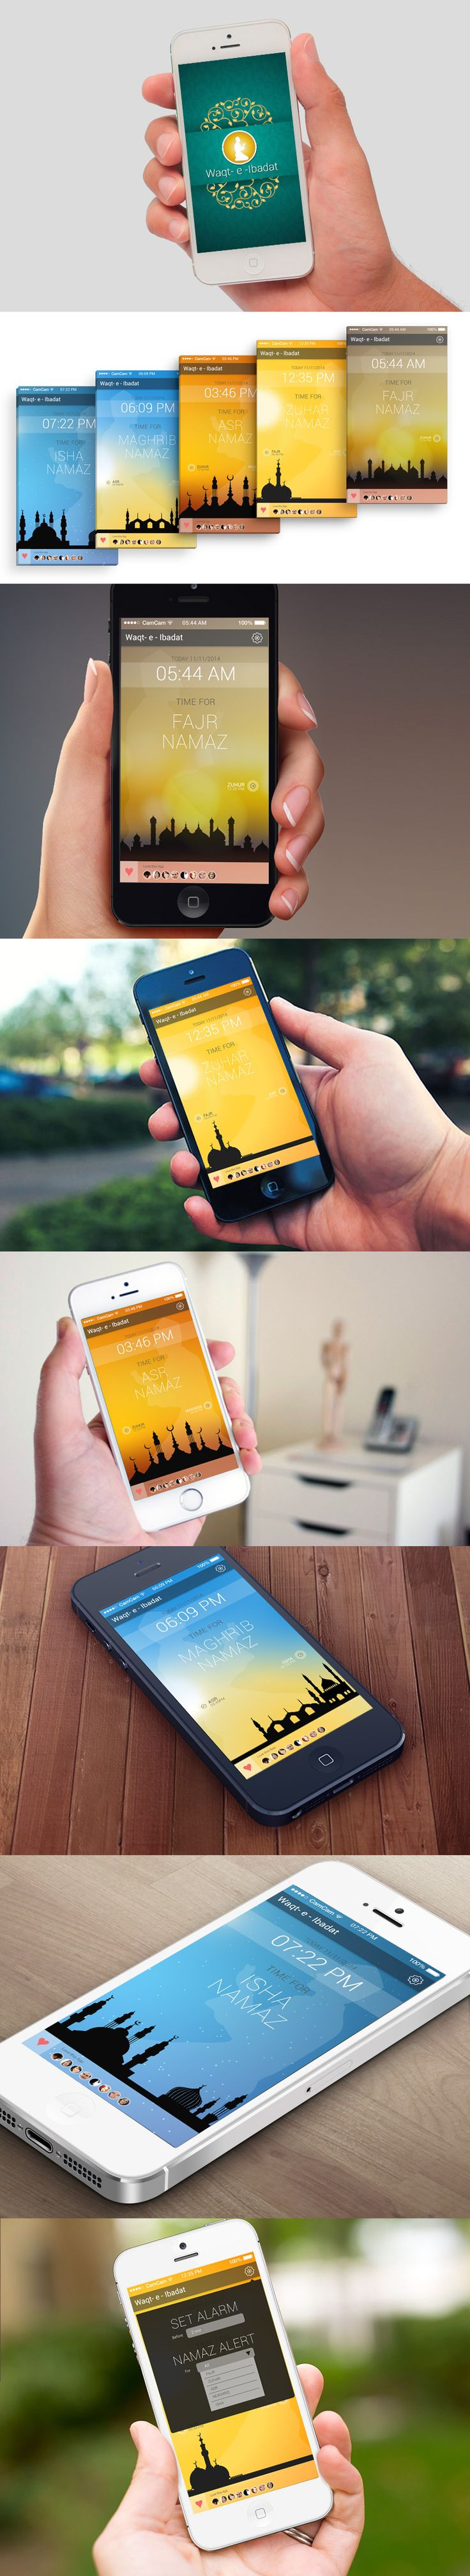 It is an app which indicates namaz timings, it's change themes automatically according to timings.